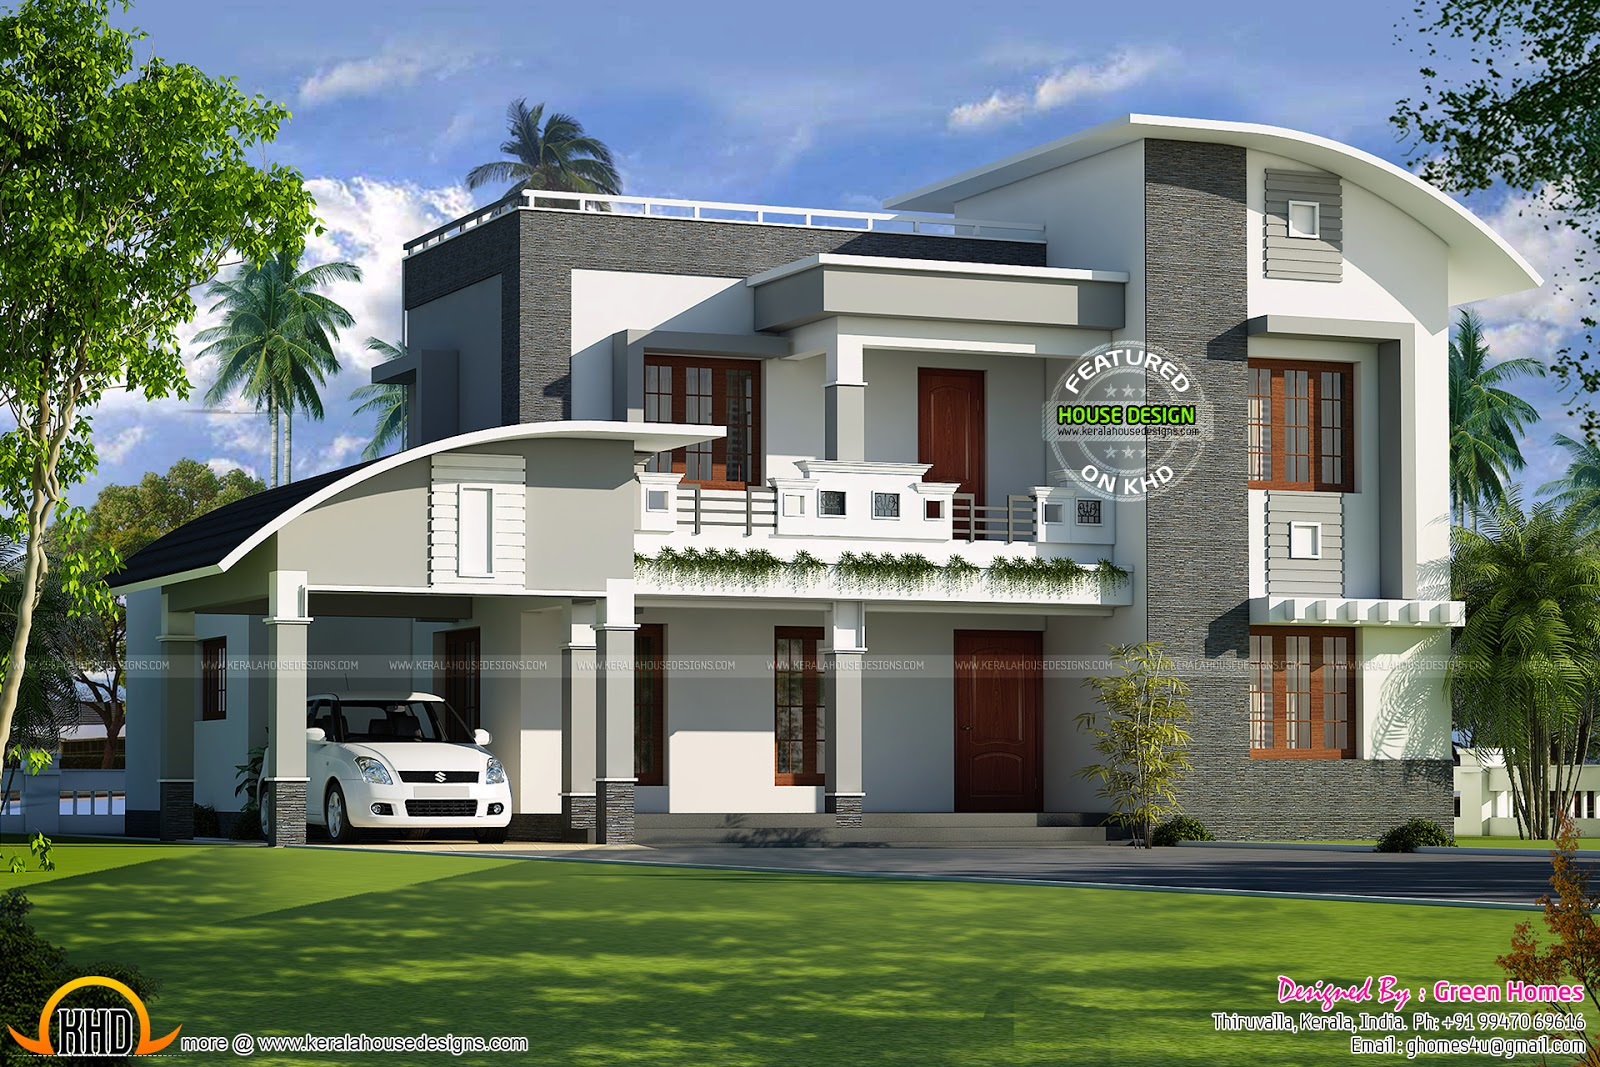 curved-roof-house Curved Roof House Design Kerala Home on modern garage with shed roof, house plans with gable roof, slate gray metal roof, ranch style house with hip roof, house with balcony roof, house plans with sloping roof, house with pool on roof, garage exterior design with metal roof, house with green metal roof, build a cupola roof, home roof, modern house roof,